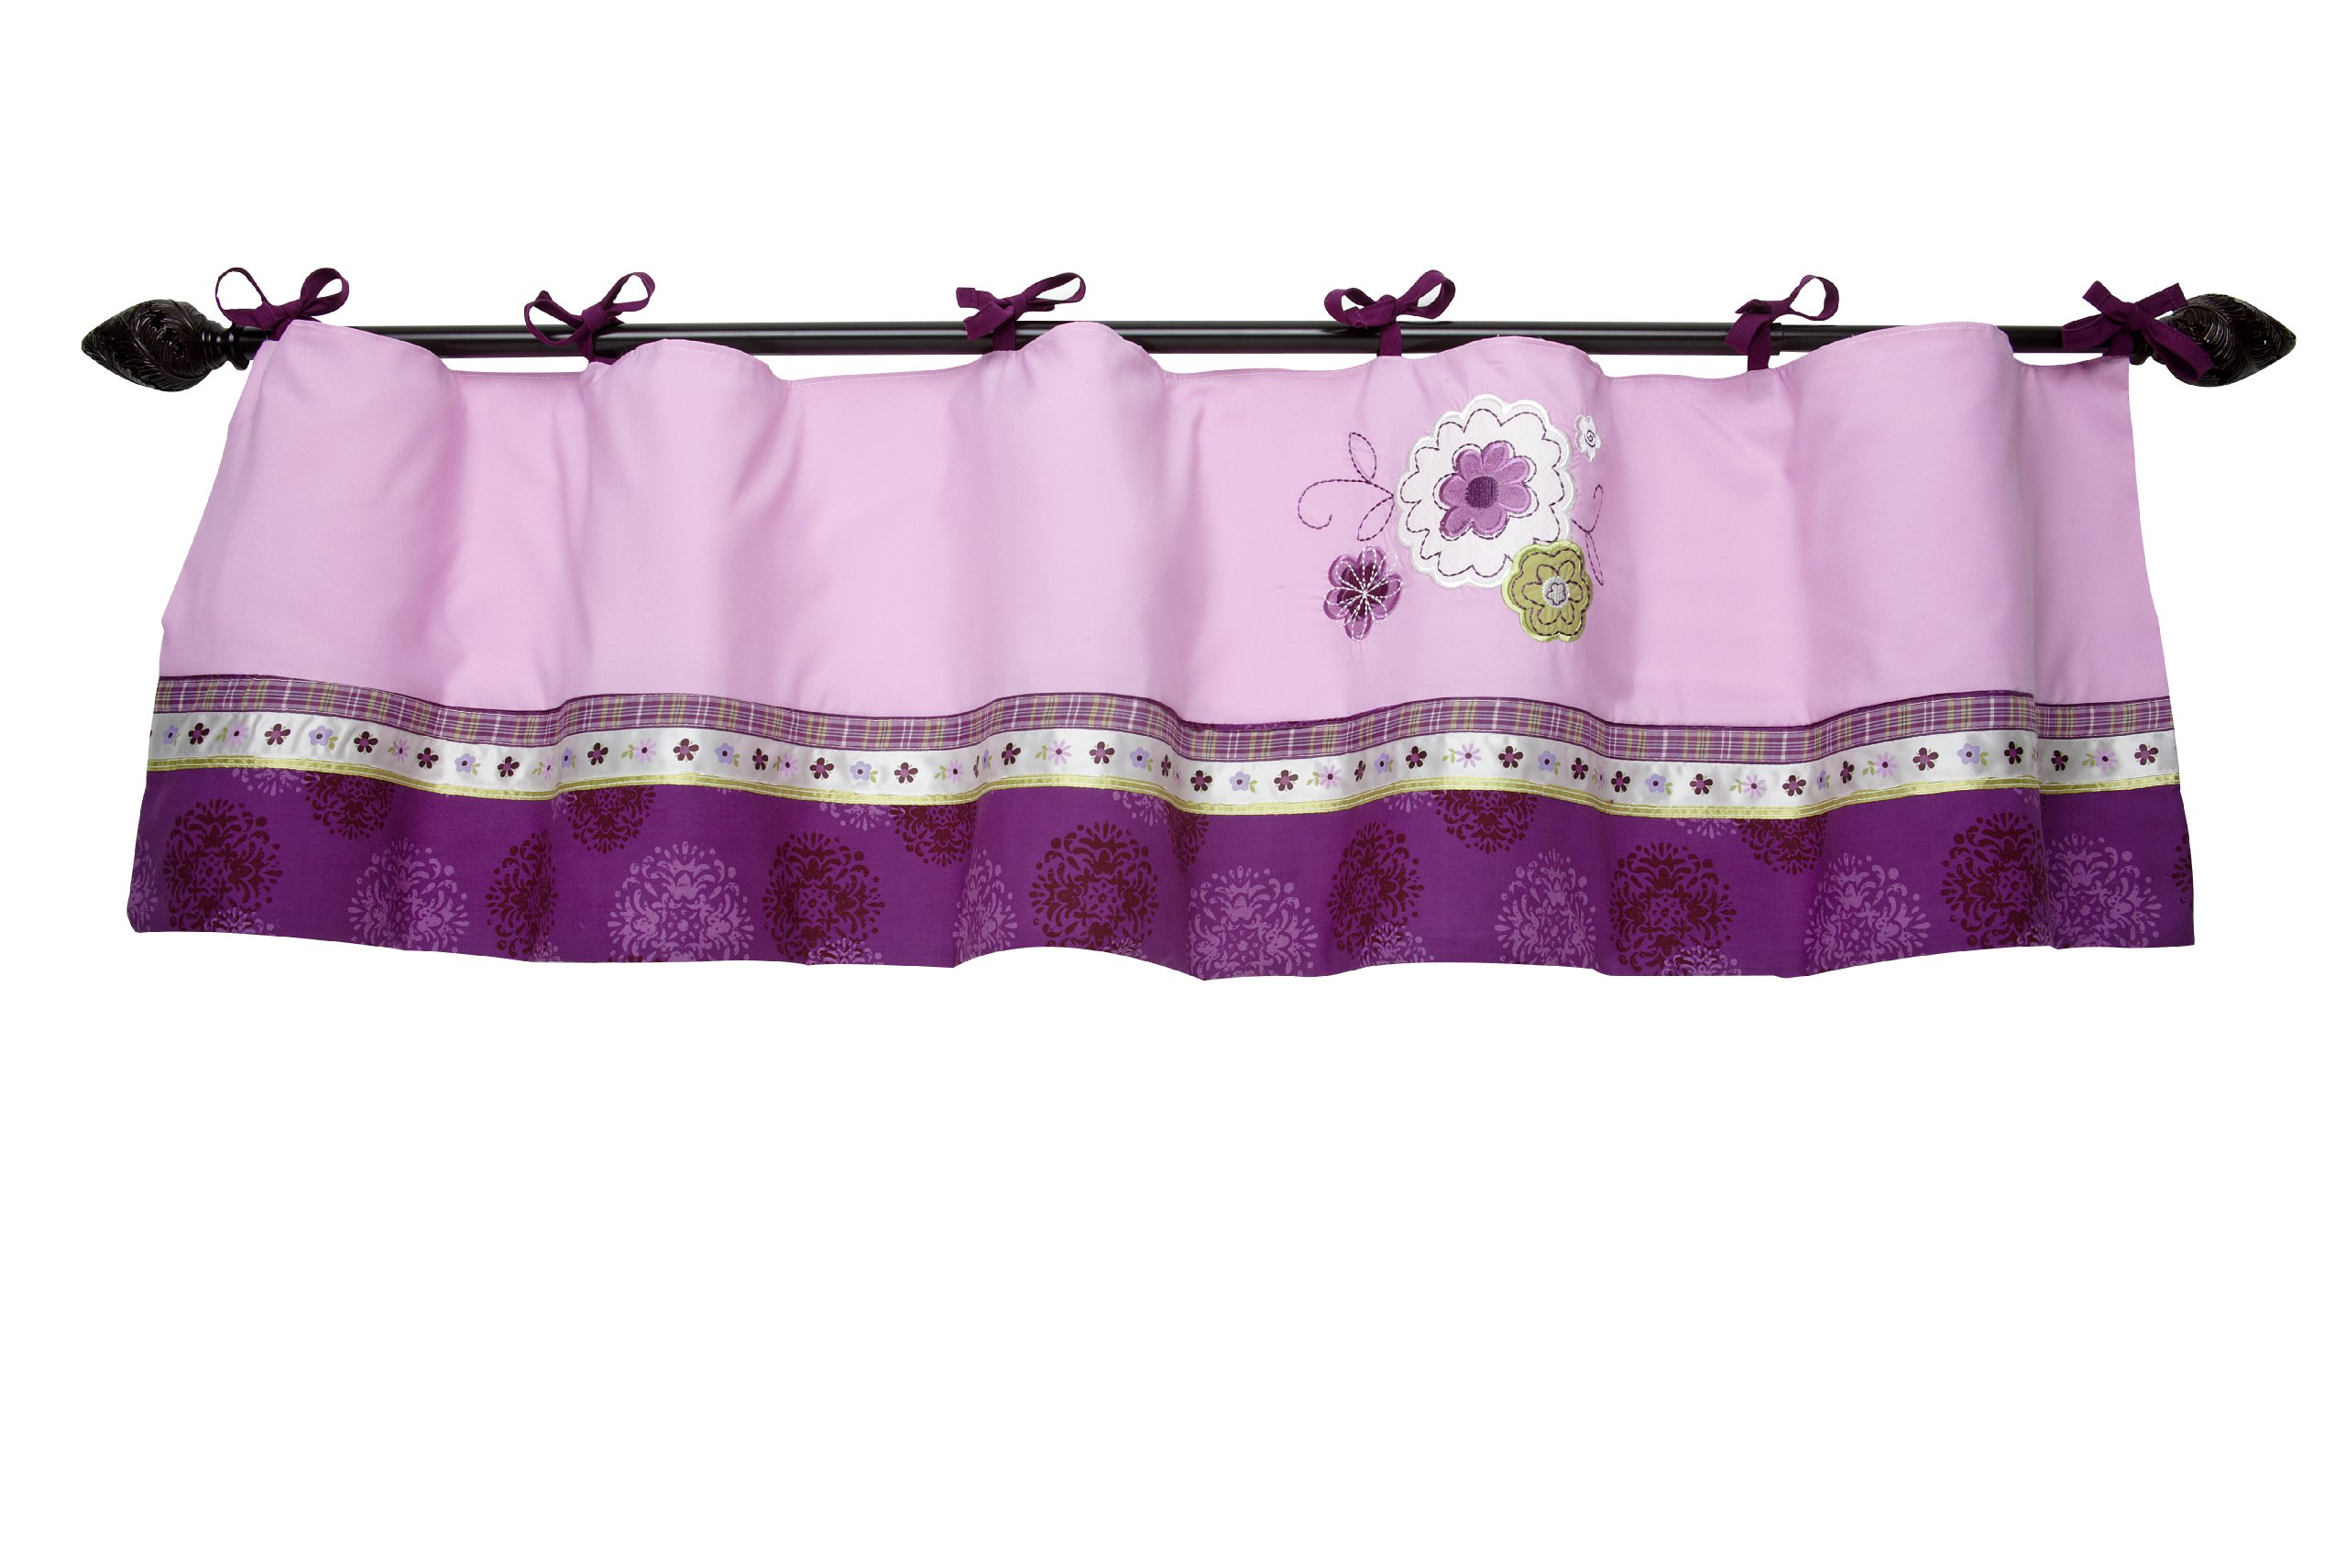 woodland window the shopping deals valance on cheap get valances shell peanut purple cotton find quotations by guides tailored